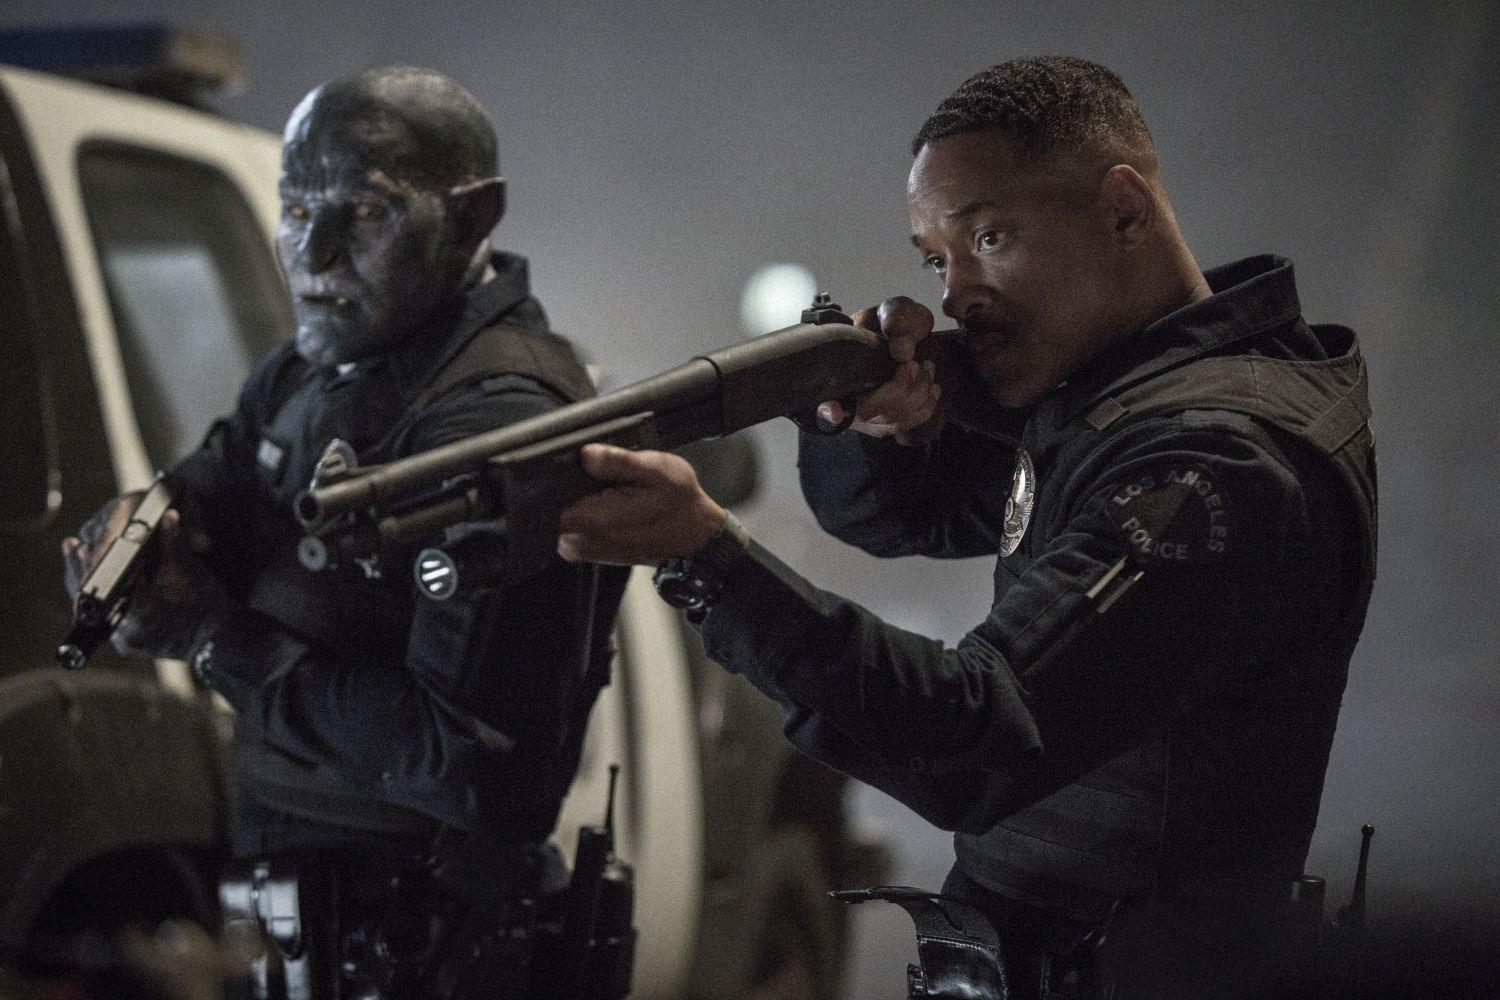 bright-mit-will-smith-und-joel-edgerton